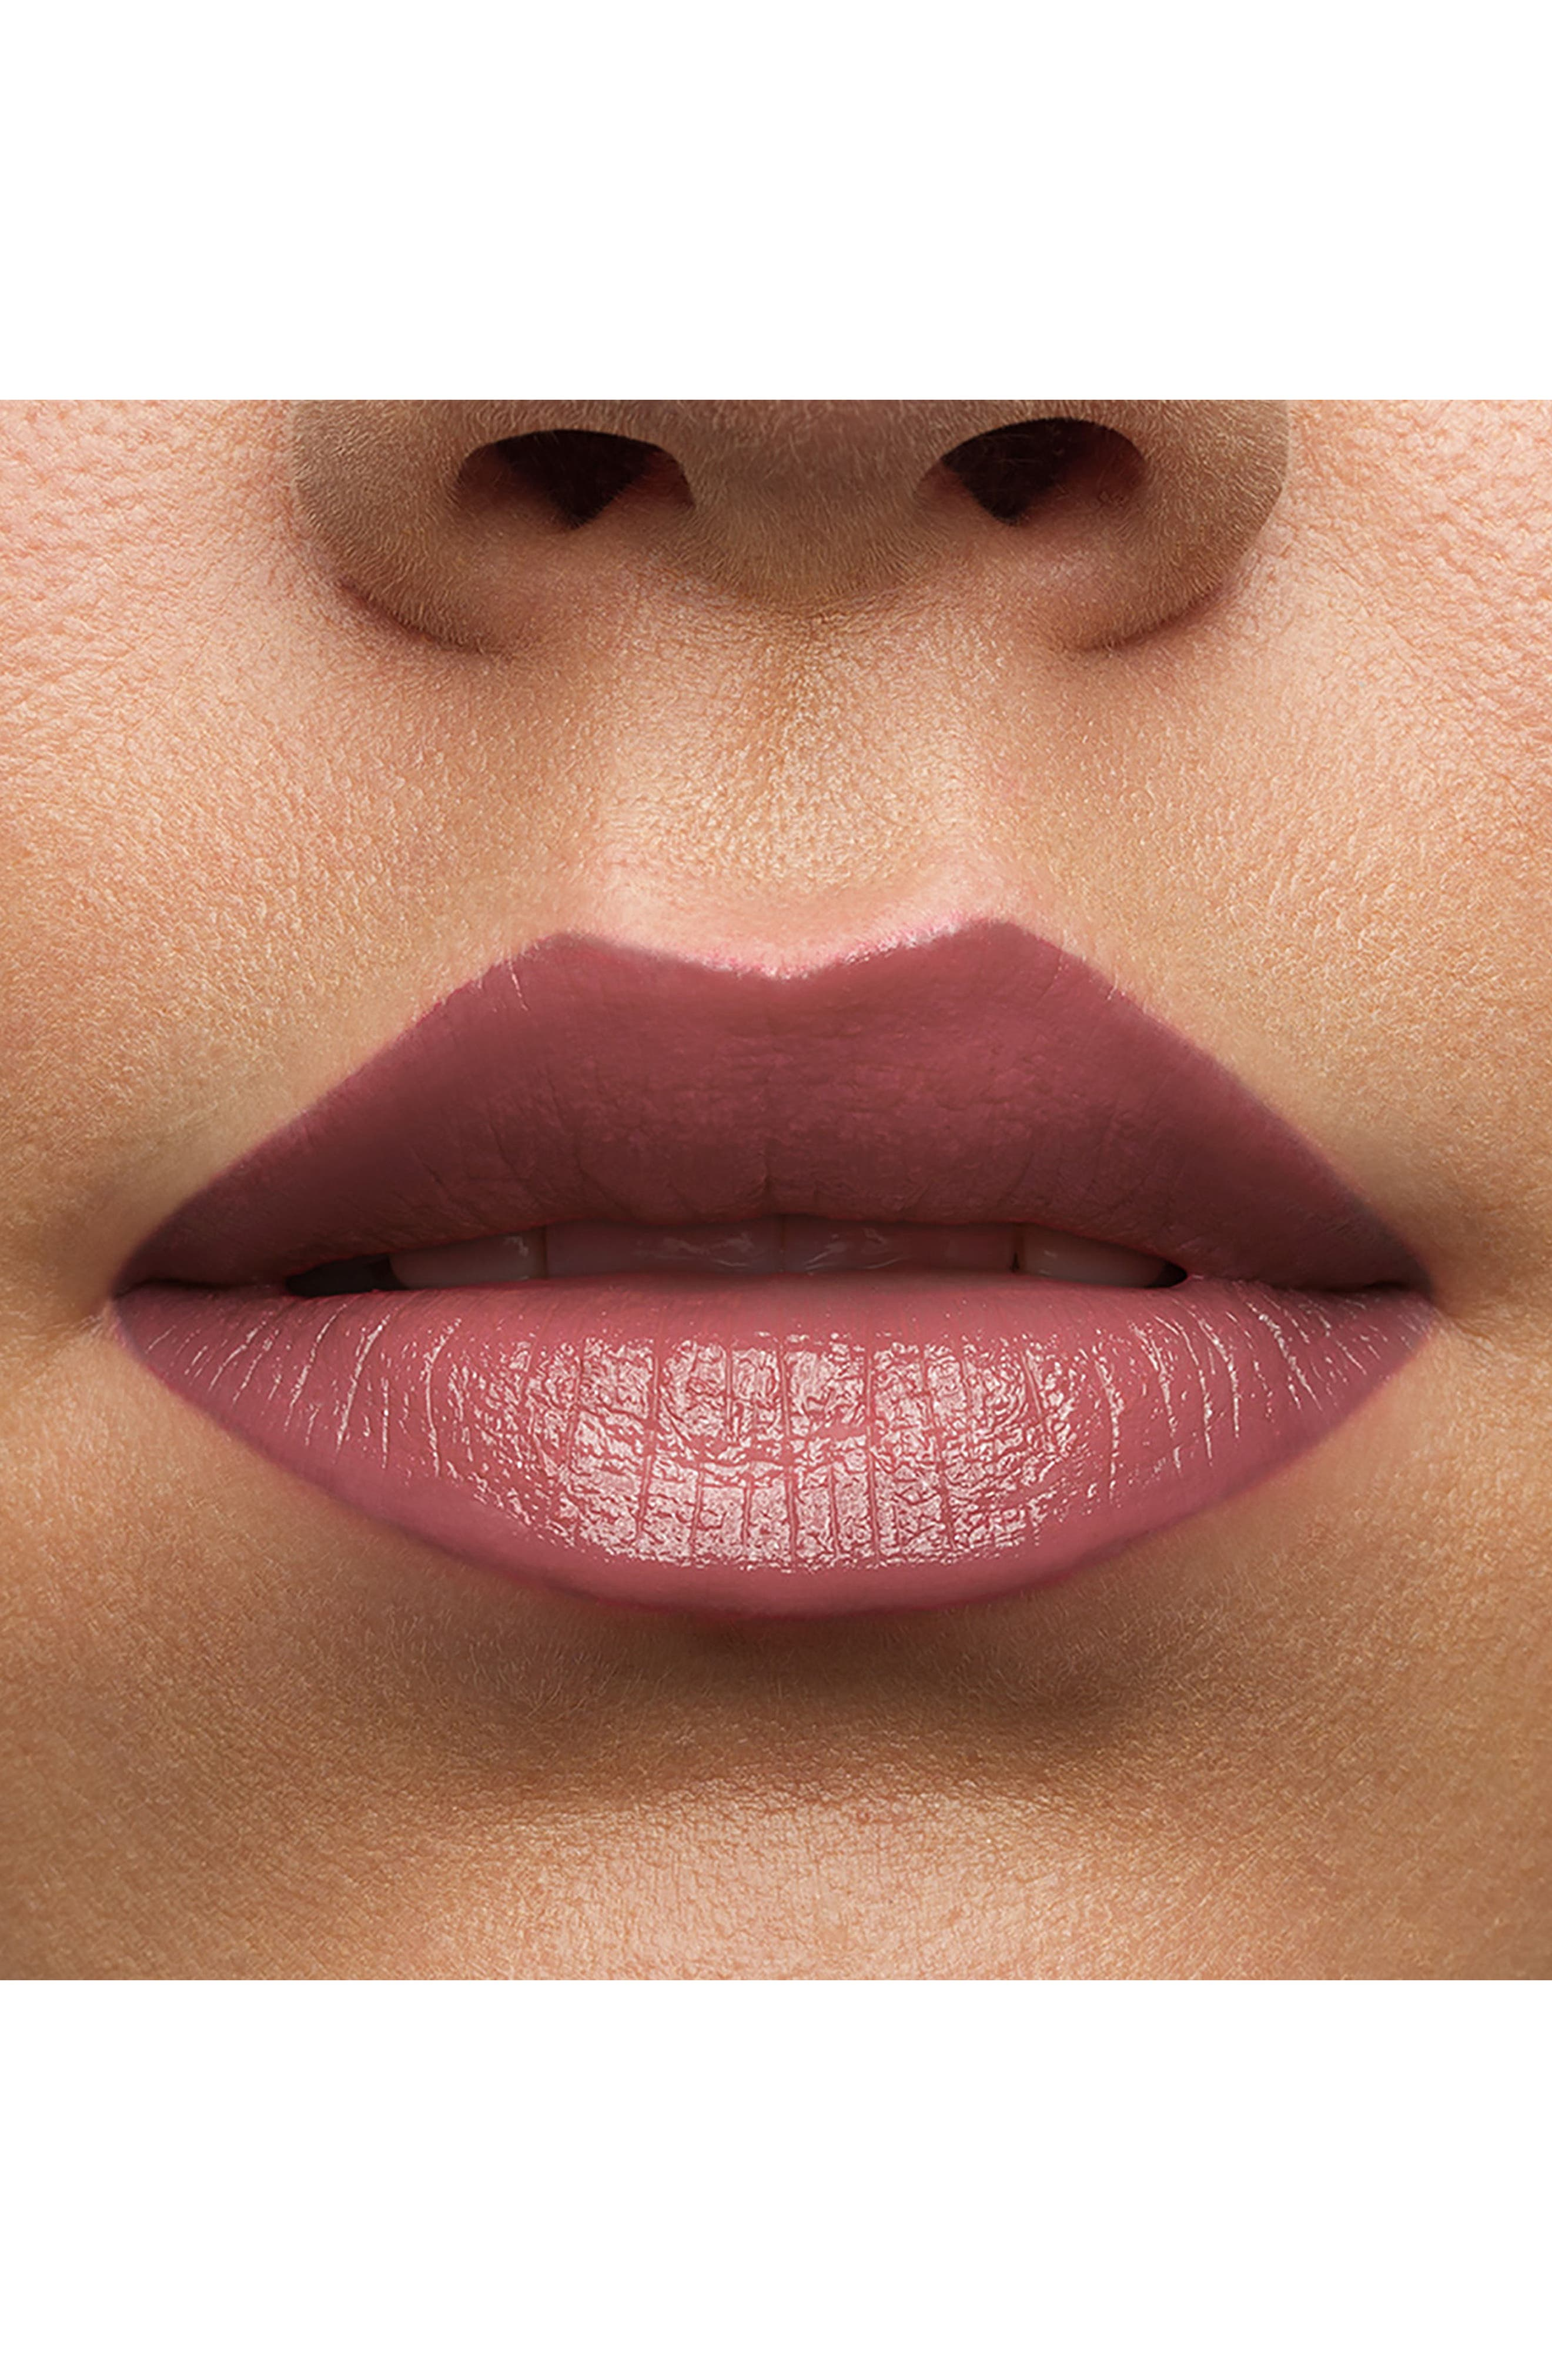 Julep<sup>™</sup> It's Balm Lip Crayon,                             Alternate thumbnail 2, color,                             Dusty Orchid Shimmer